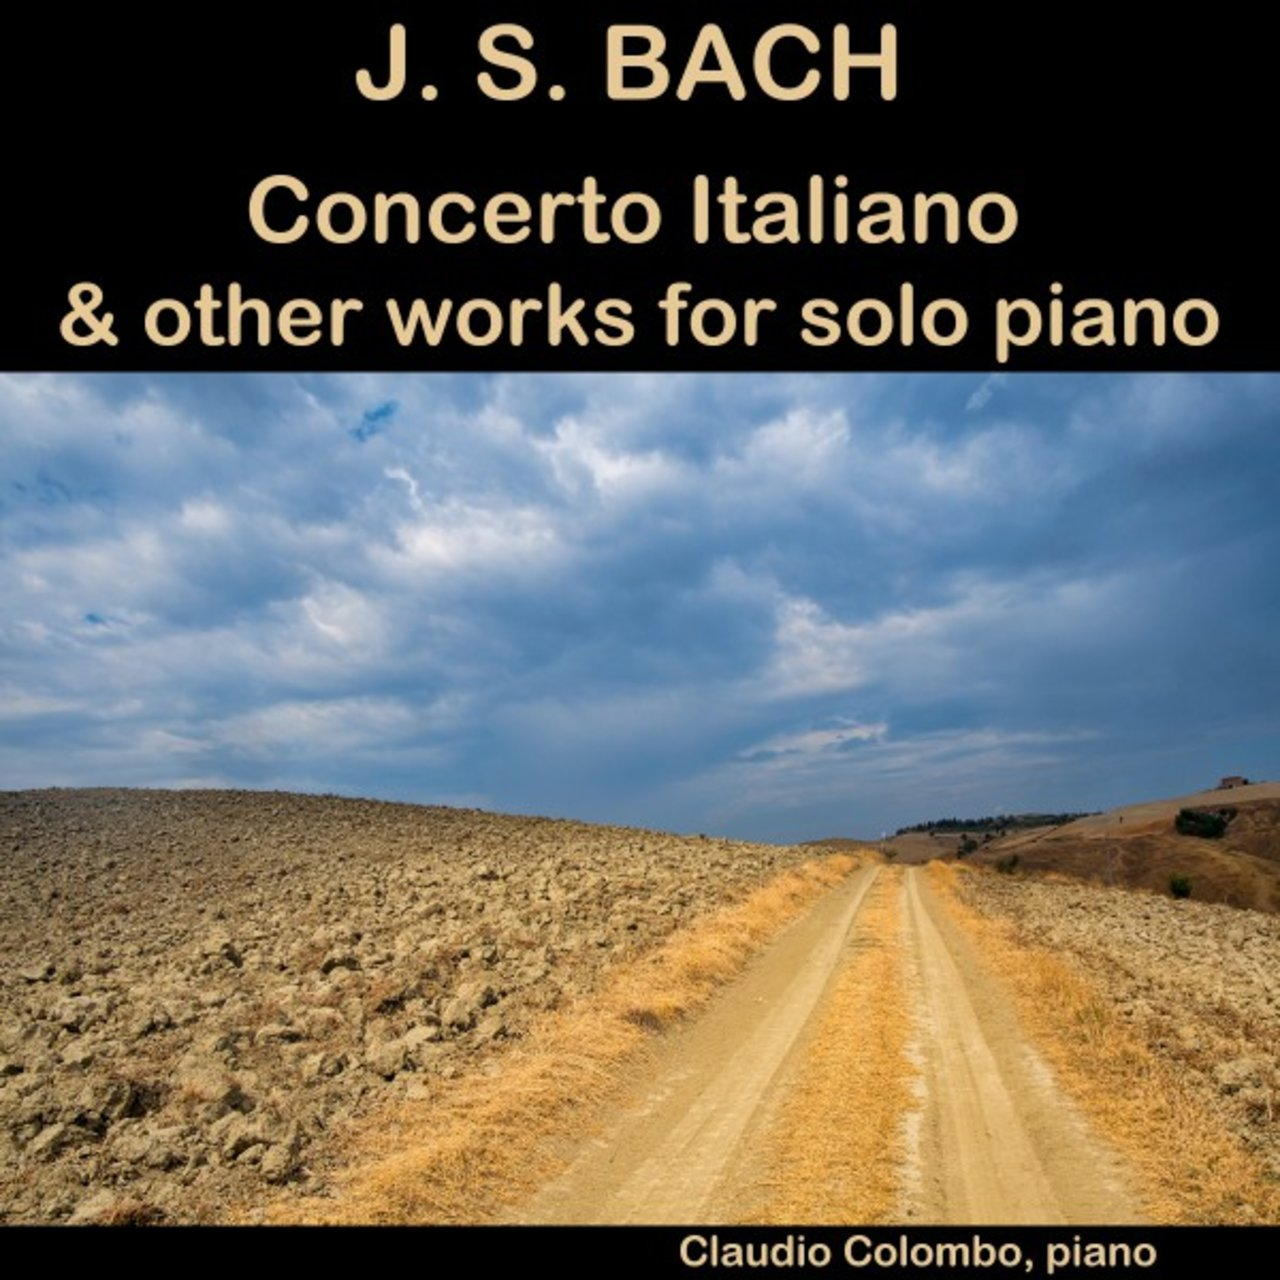 J. S. Bach: Concerto Italiano & other works for solo Piano